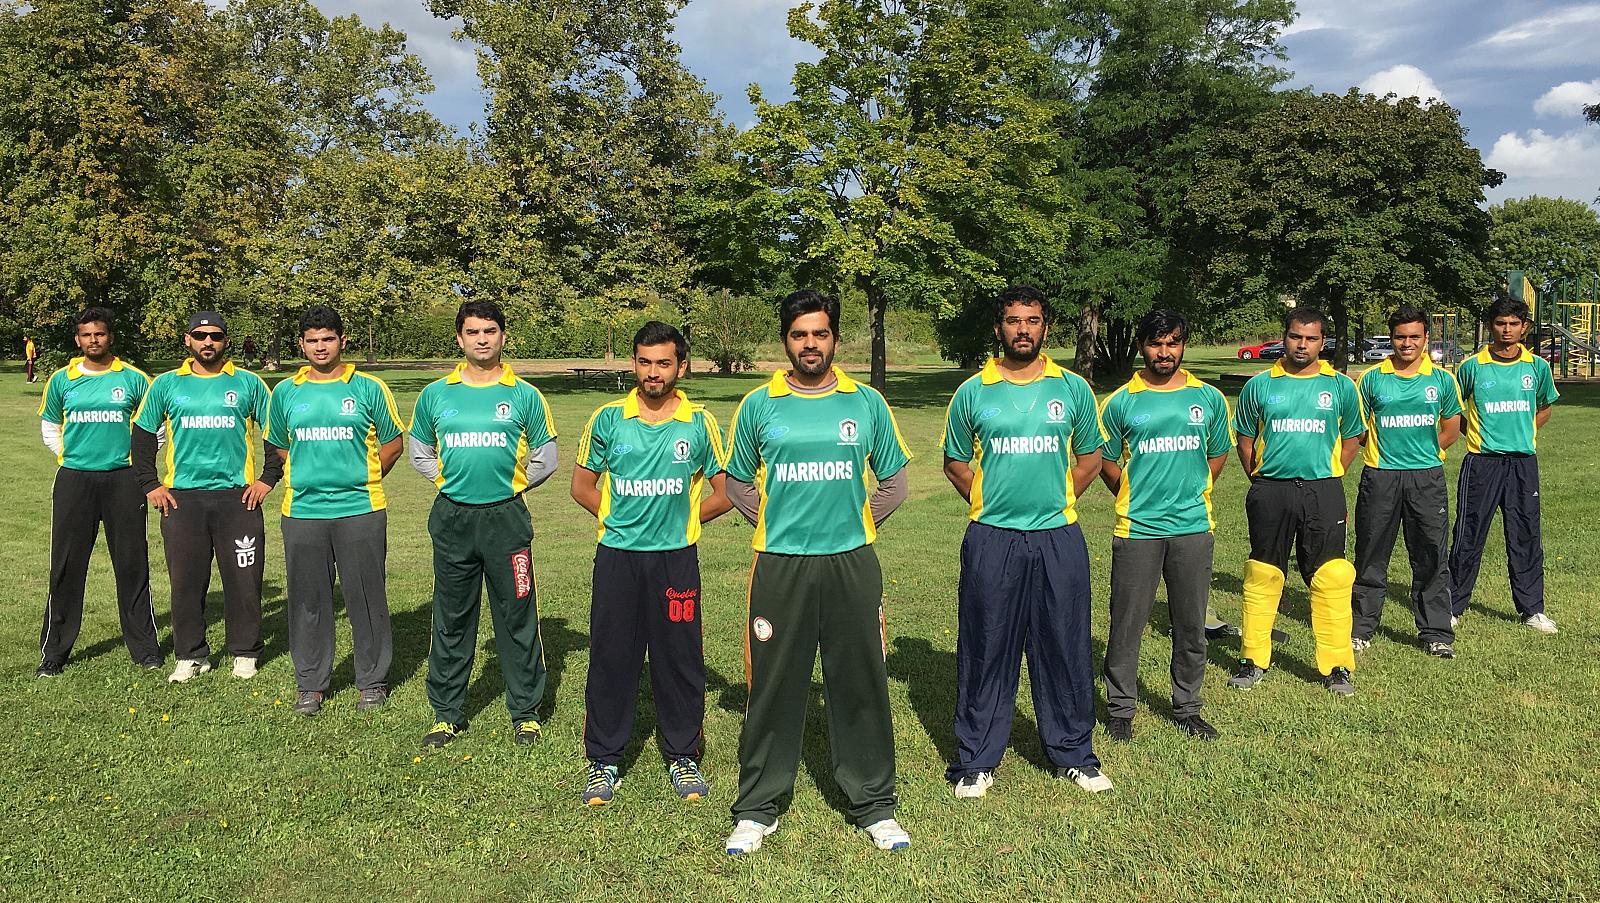 Wayne State Cricket Club Raising Funds To Compete At The